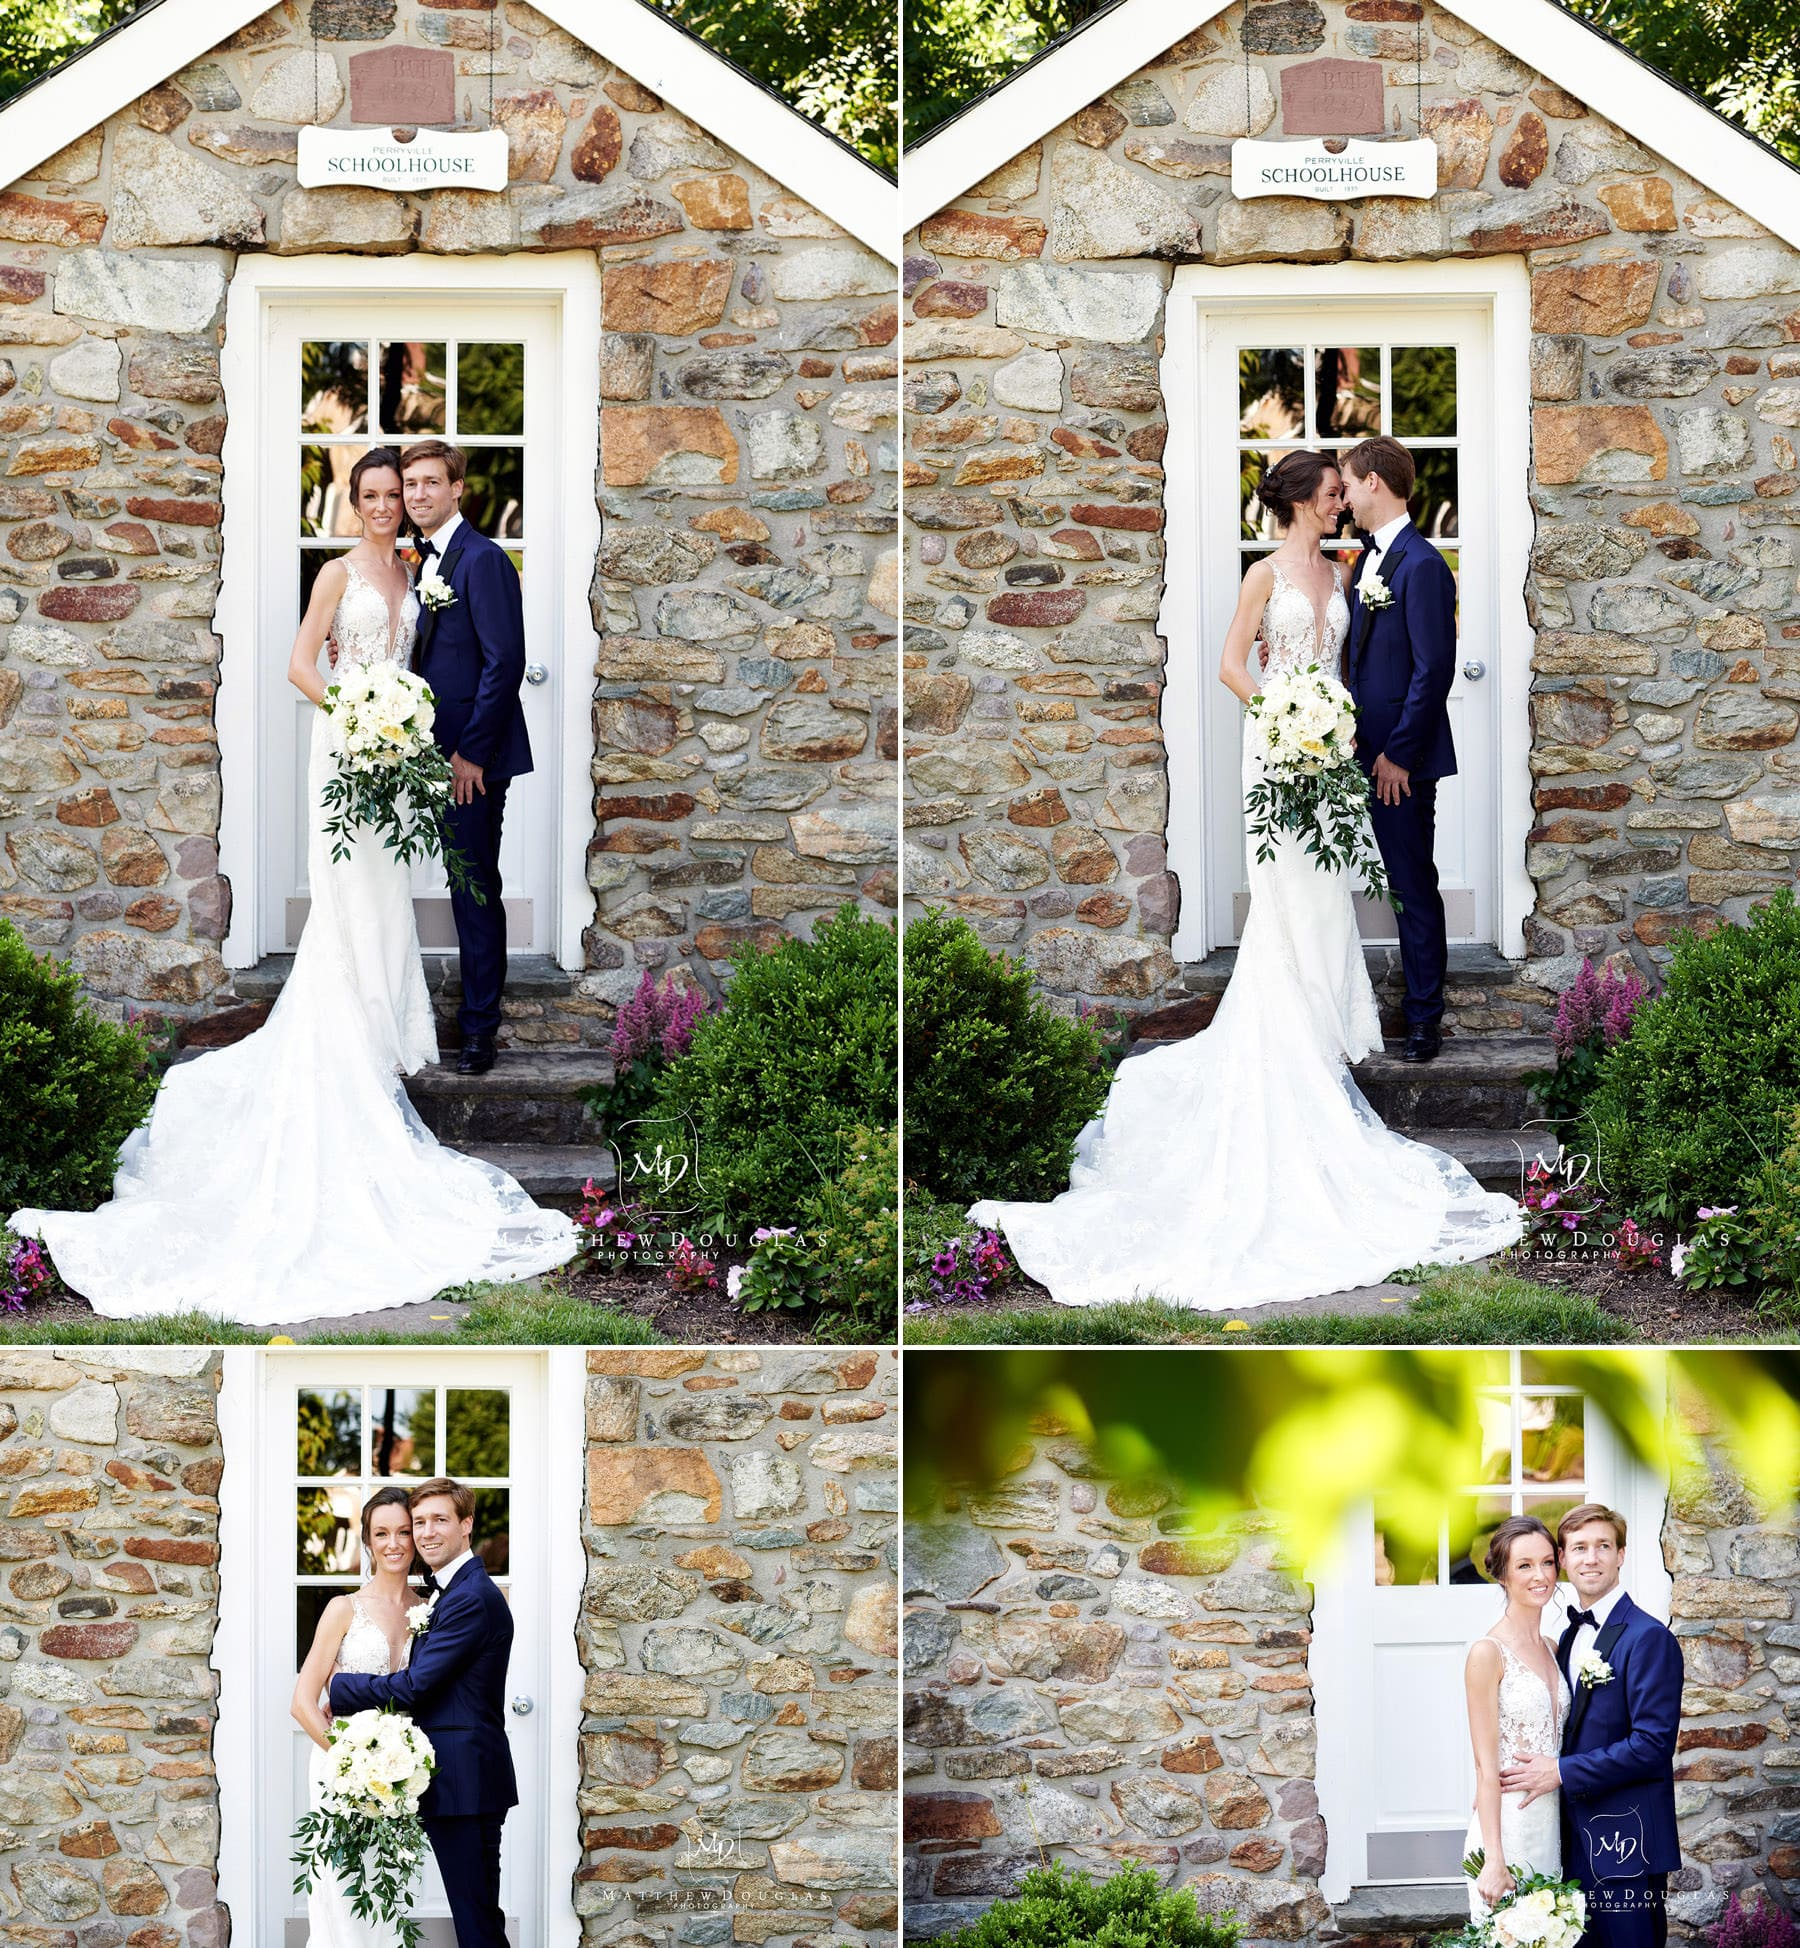 farmhouse at the grand colonial school wedding photo